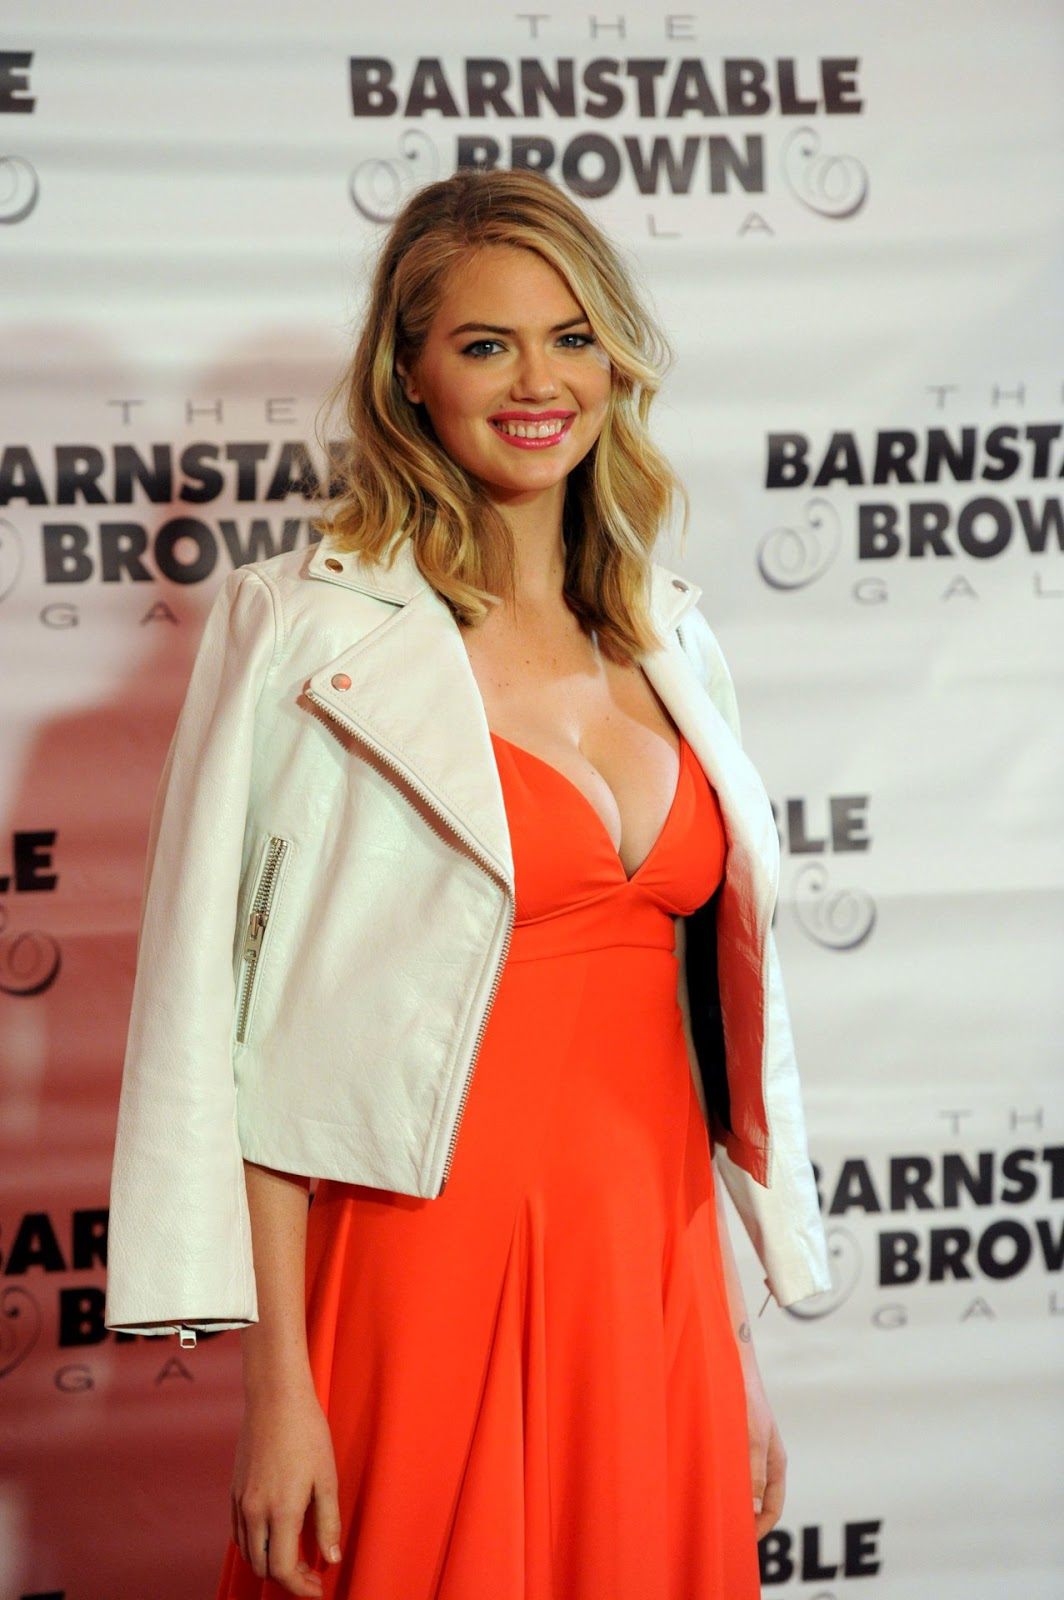 Kate Upton bares cleavage in low cut dress at Derby Gala